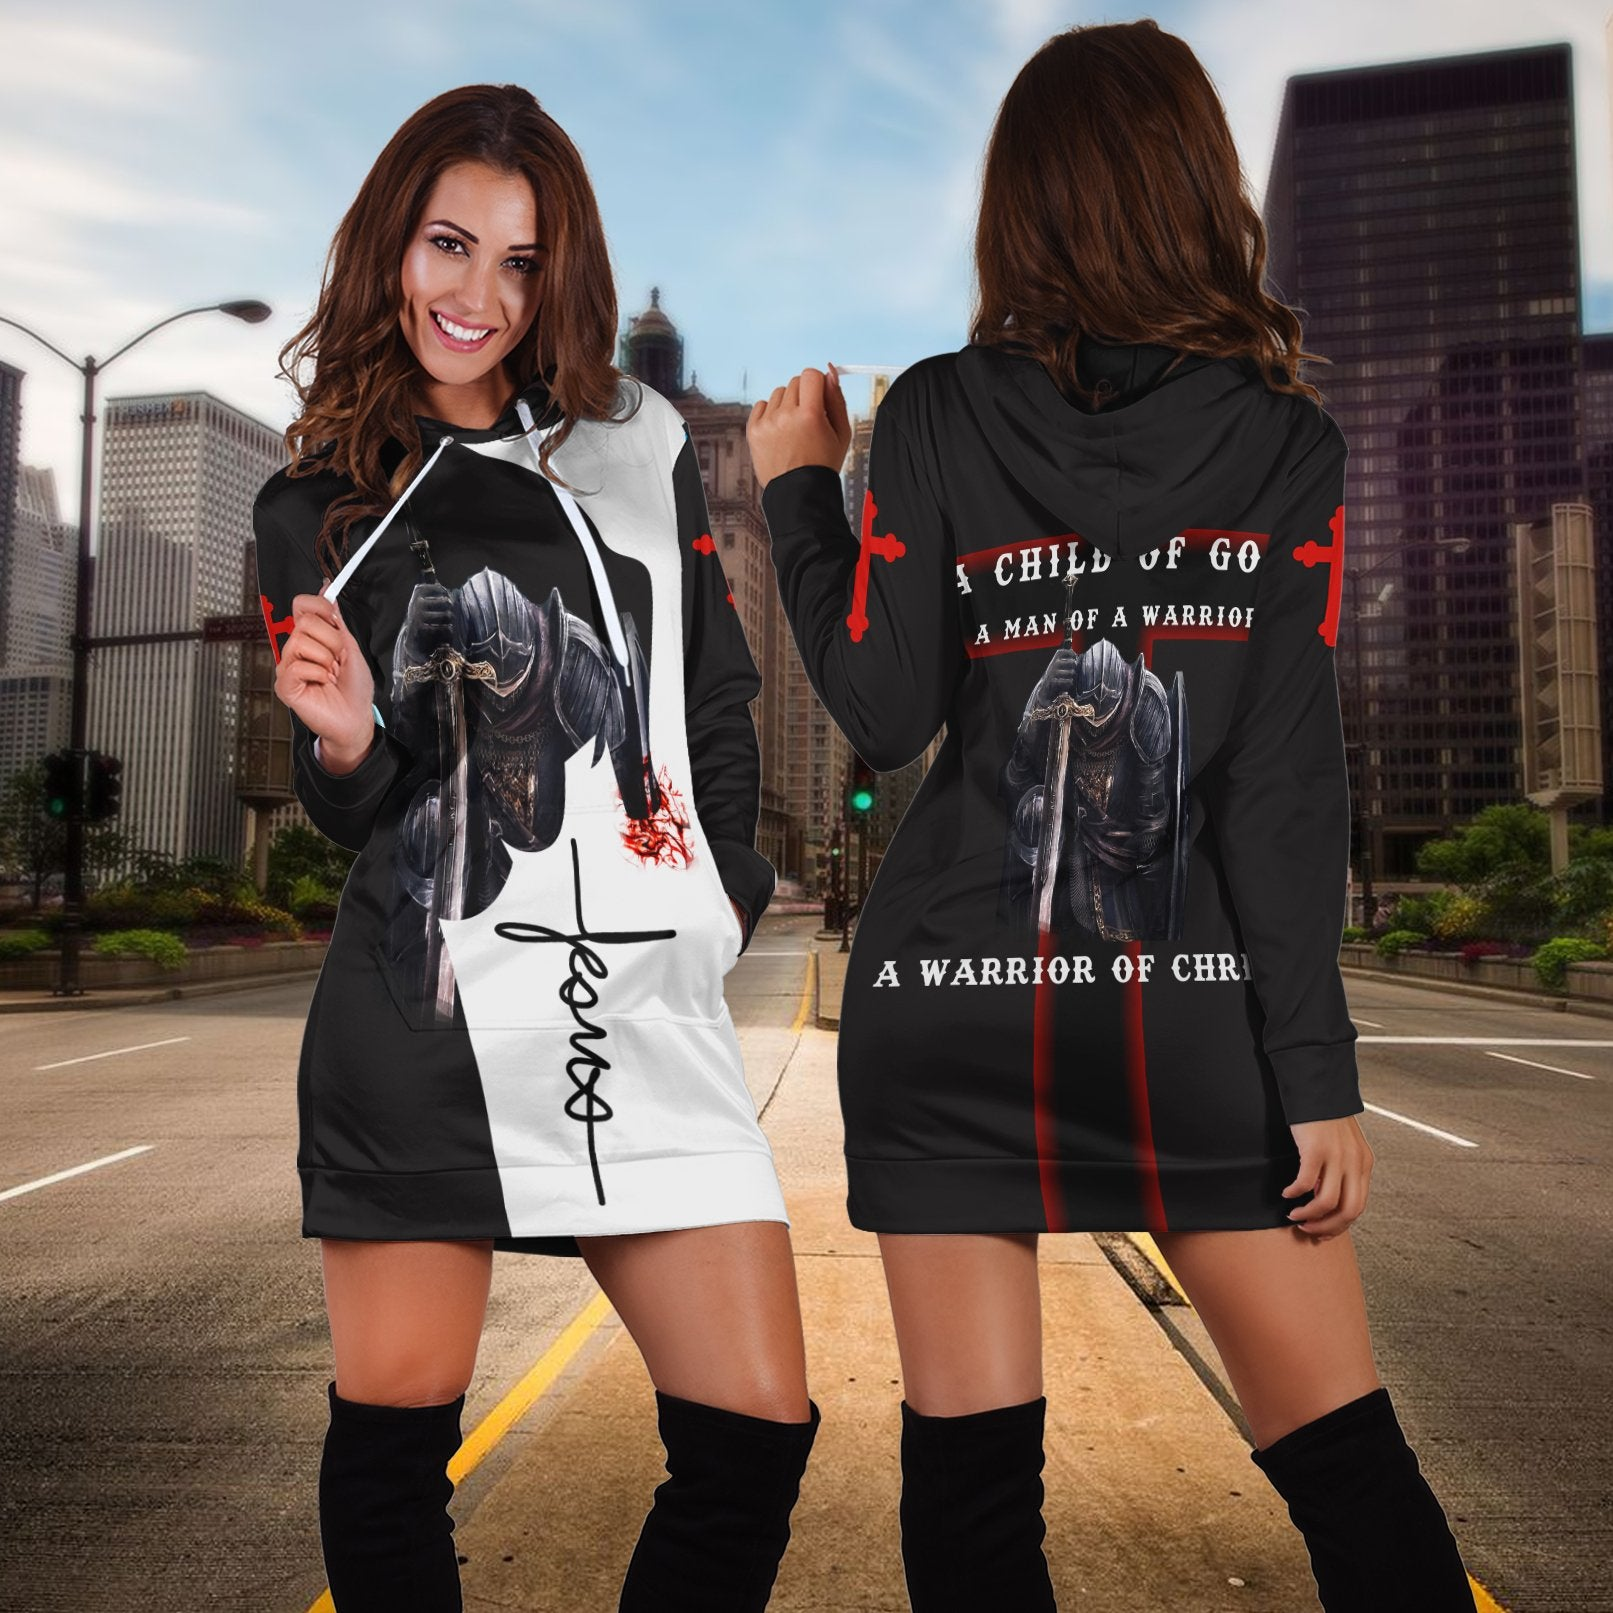 A Child Of God A Man Of A Warrior Of Christ Hoodie Dress